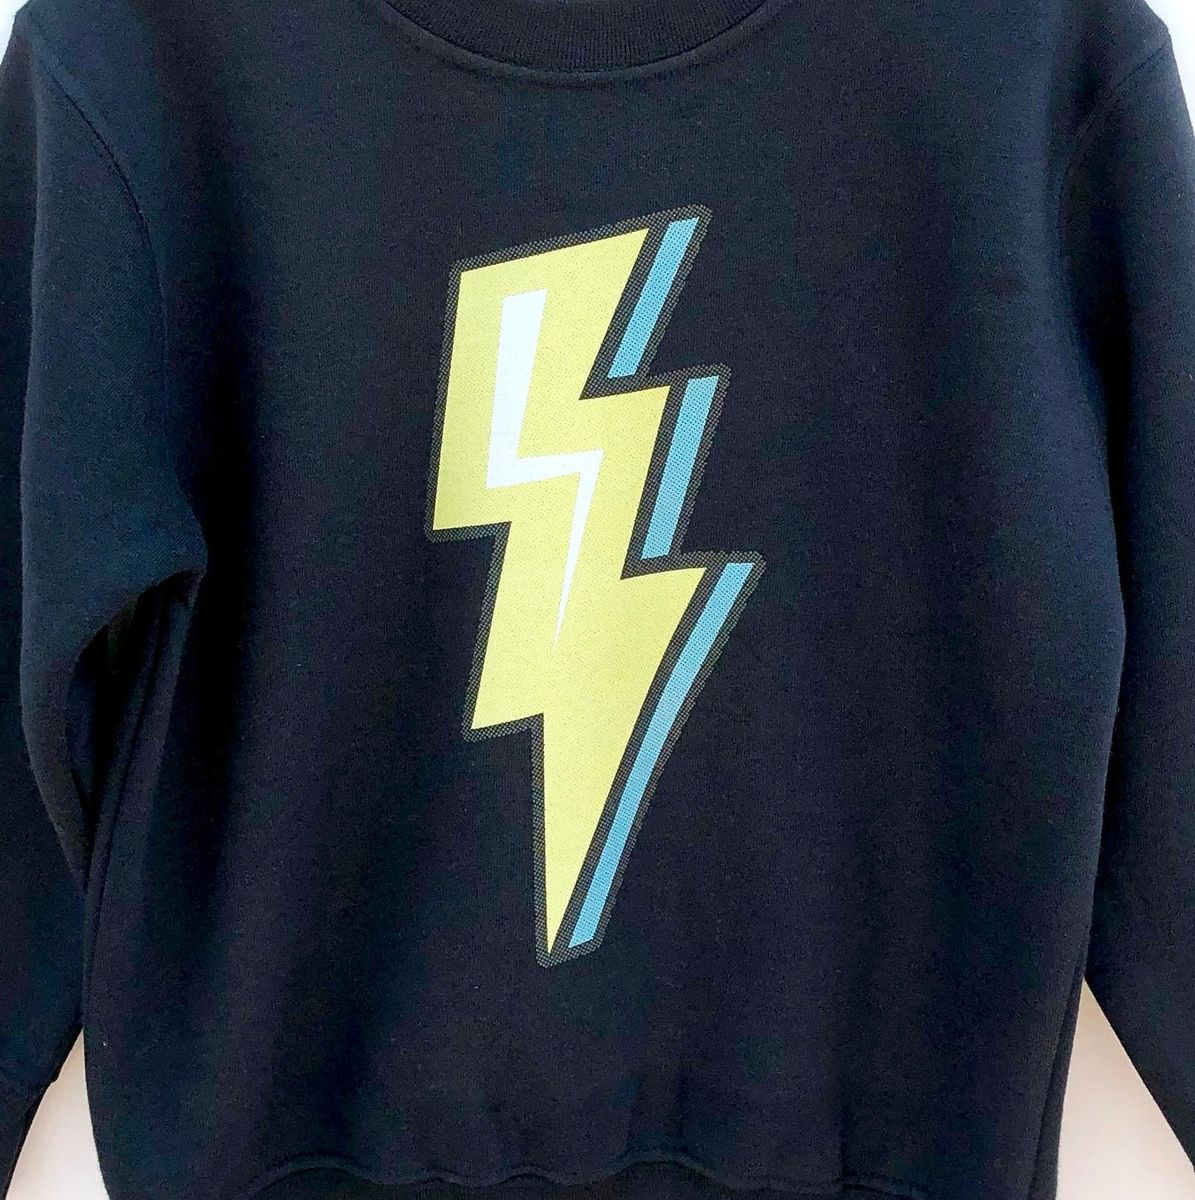 Lightning Bolt Black or White T-Shirt - product images  of